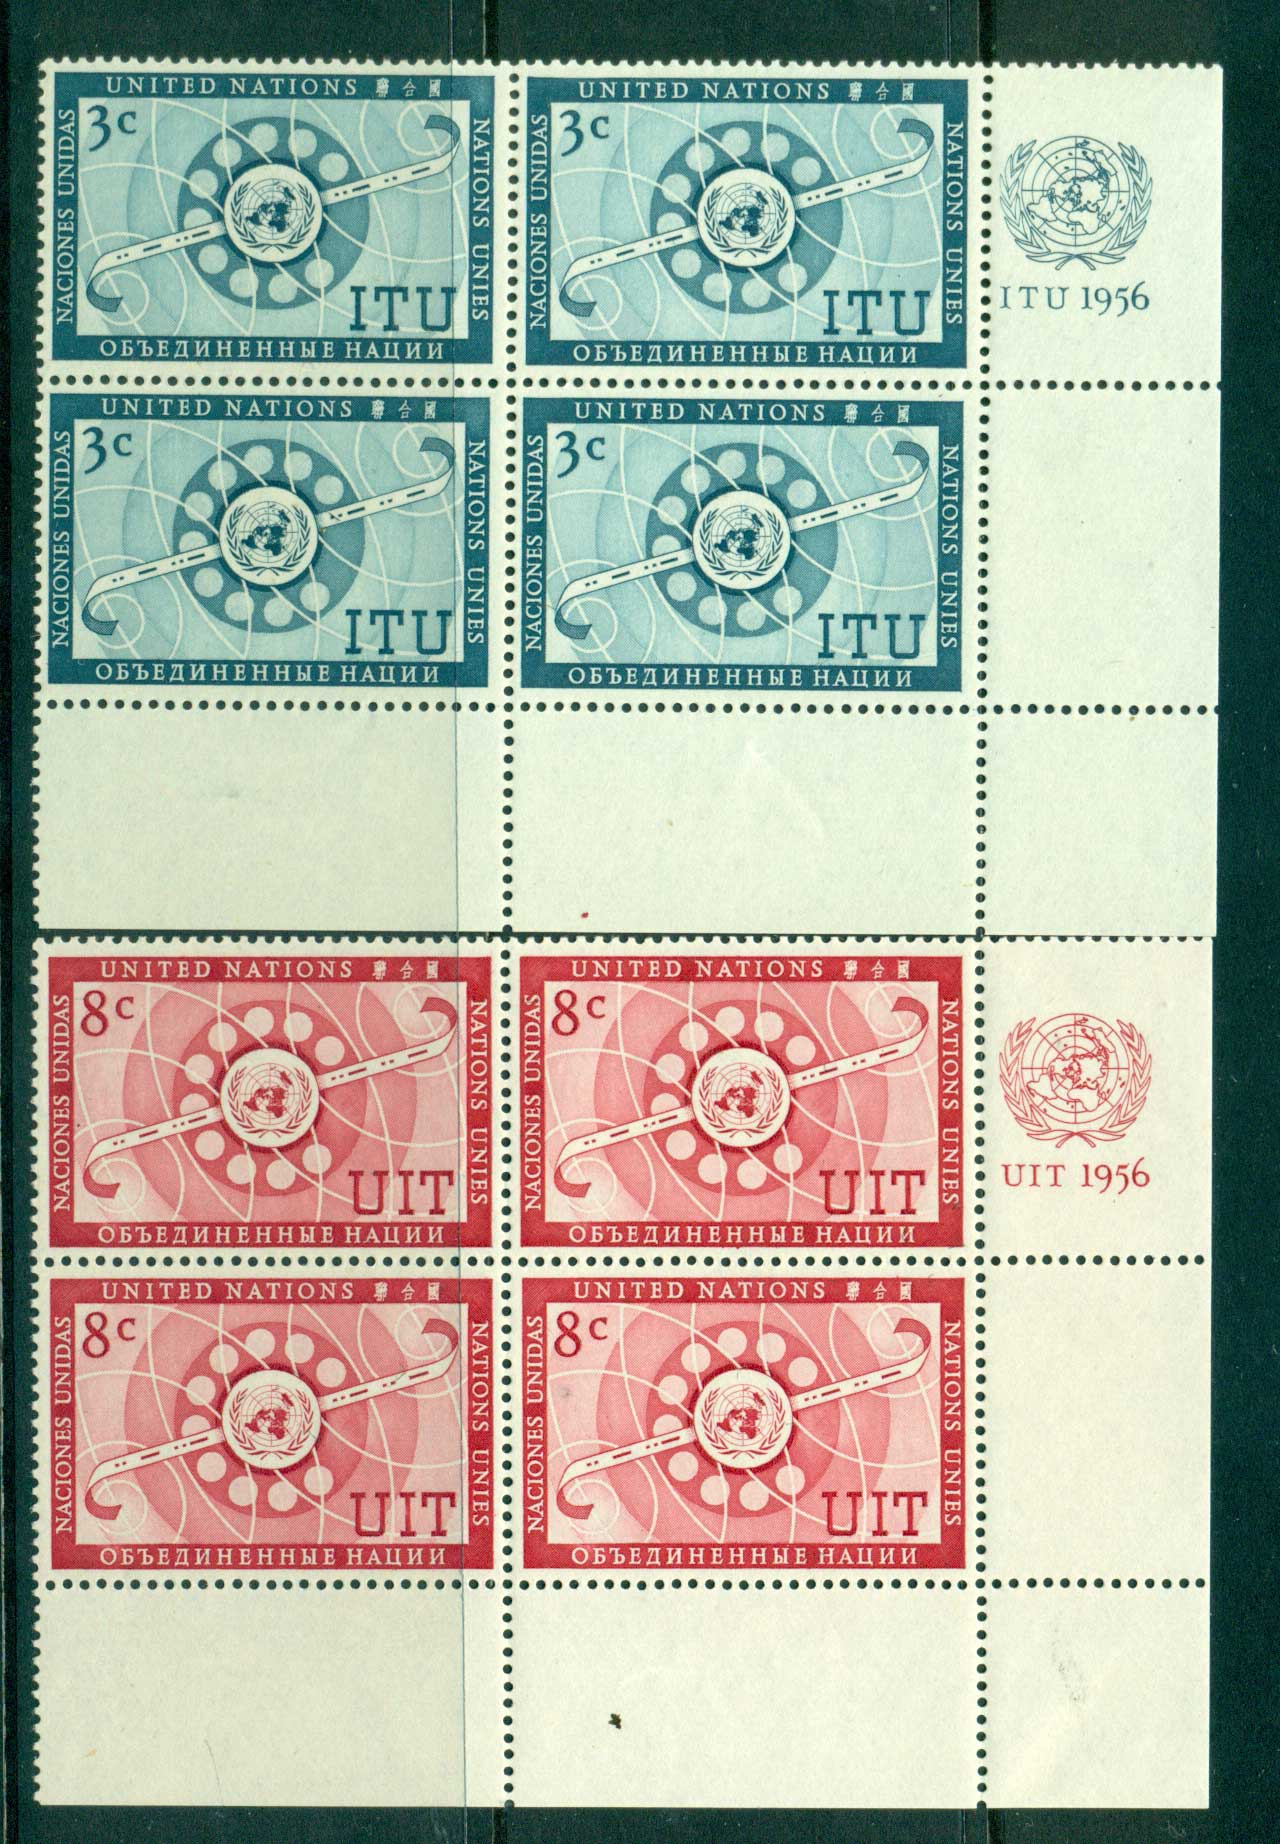 UN New York 1956 Honouring the ITU Imprint Blk 4 MUH lot40883